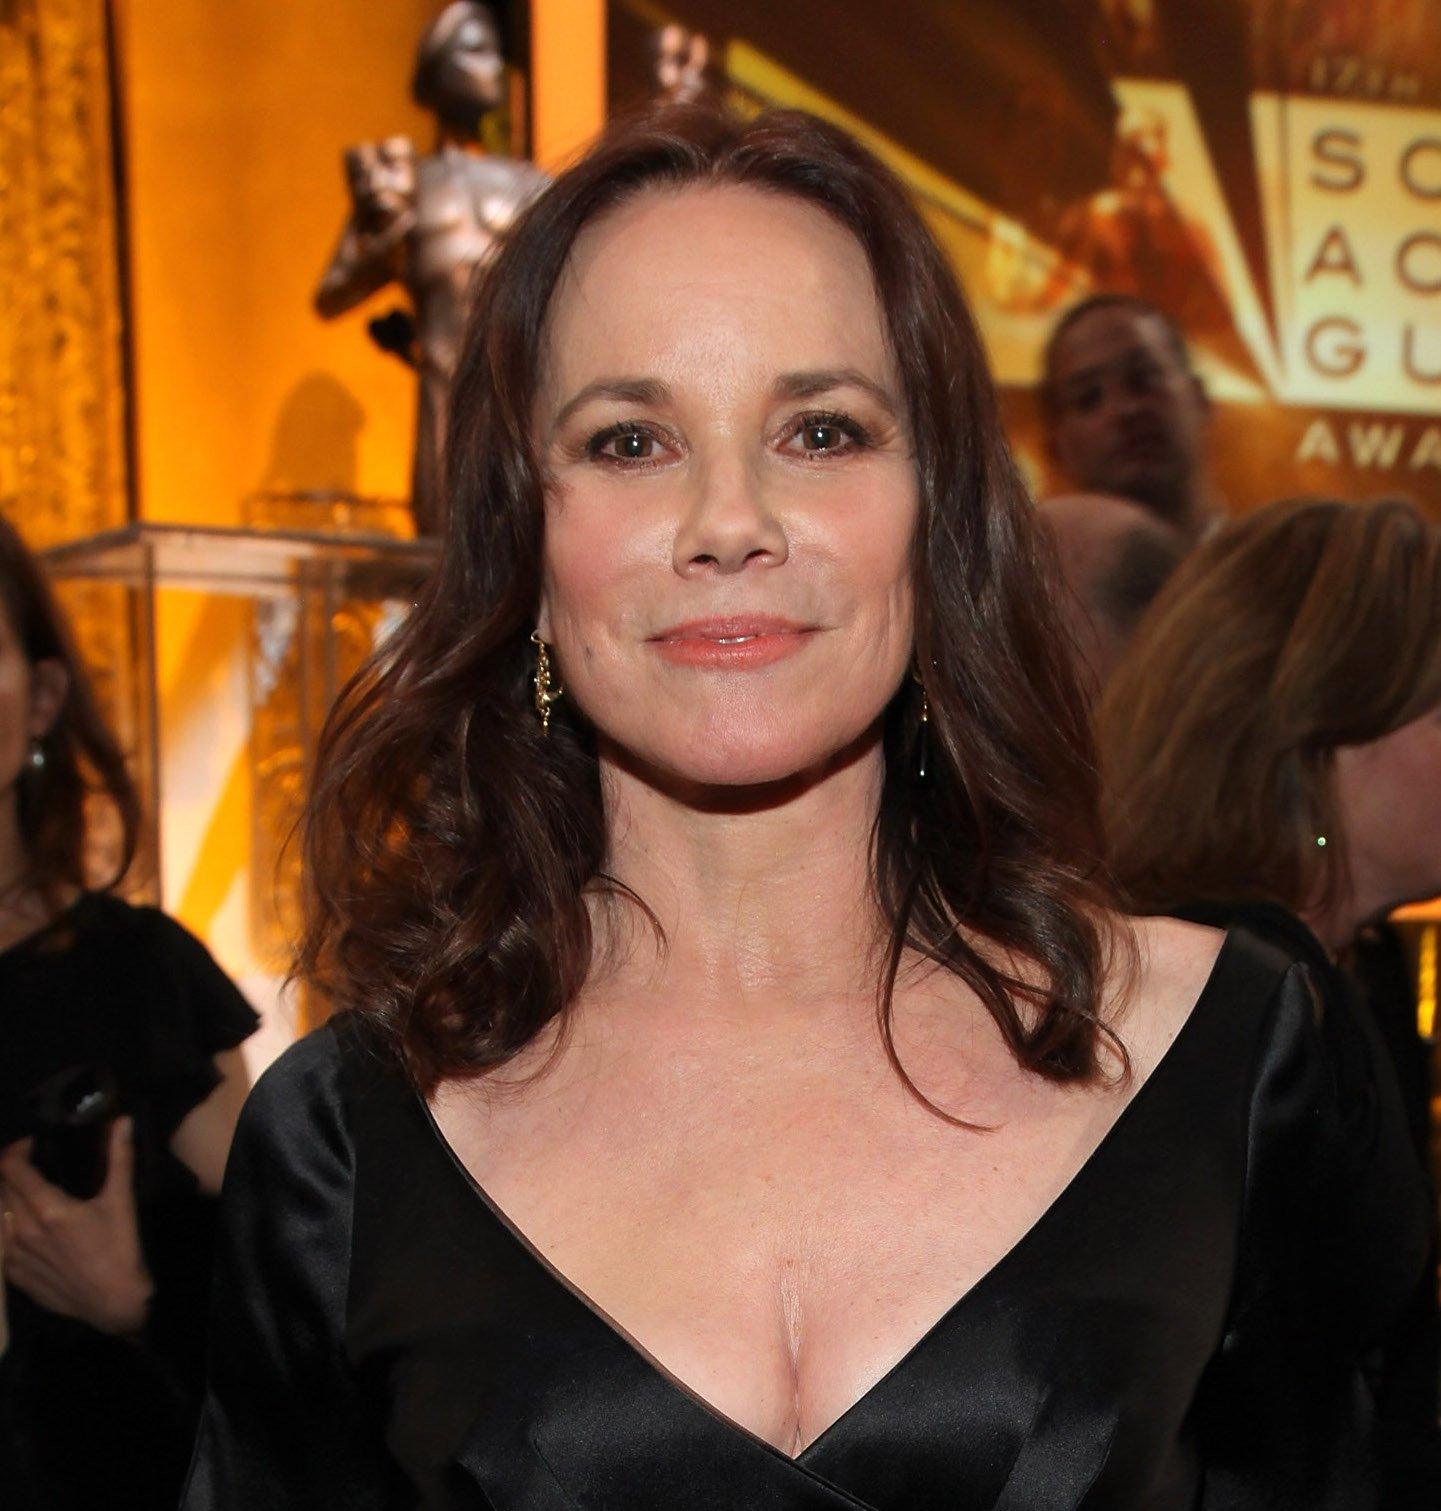 Actress Barbara Hershey attends the 17th Annual Screen Actors Guild Awards on January 30, 2011 in Los Angeles, California | Source: Getty Images